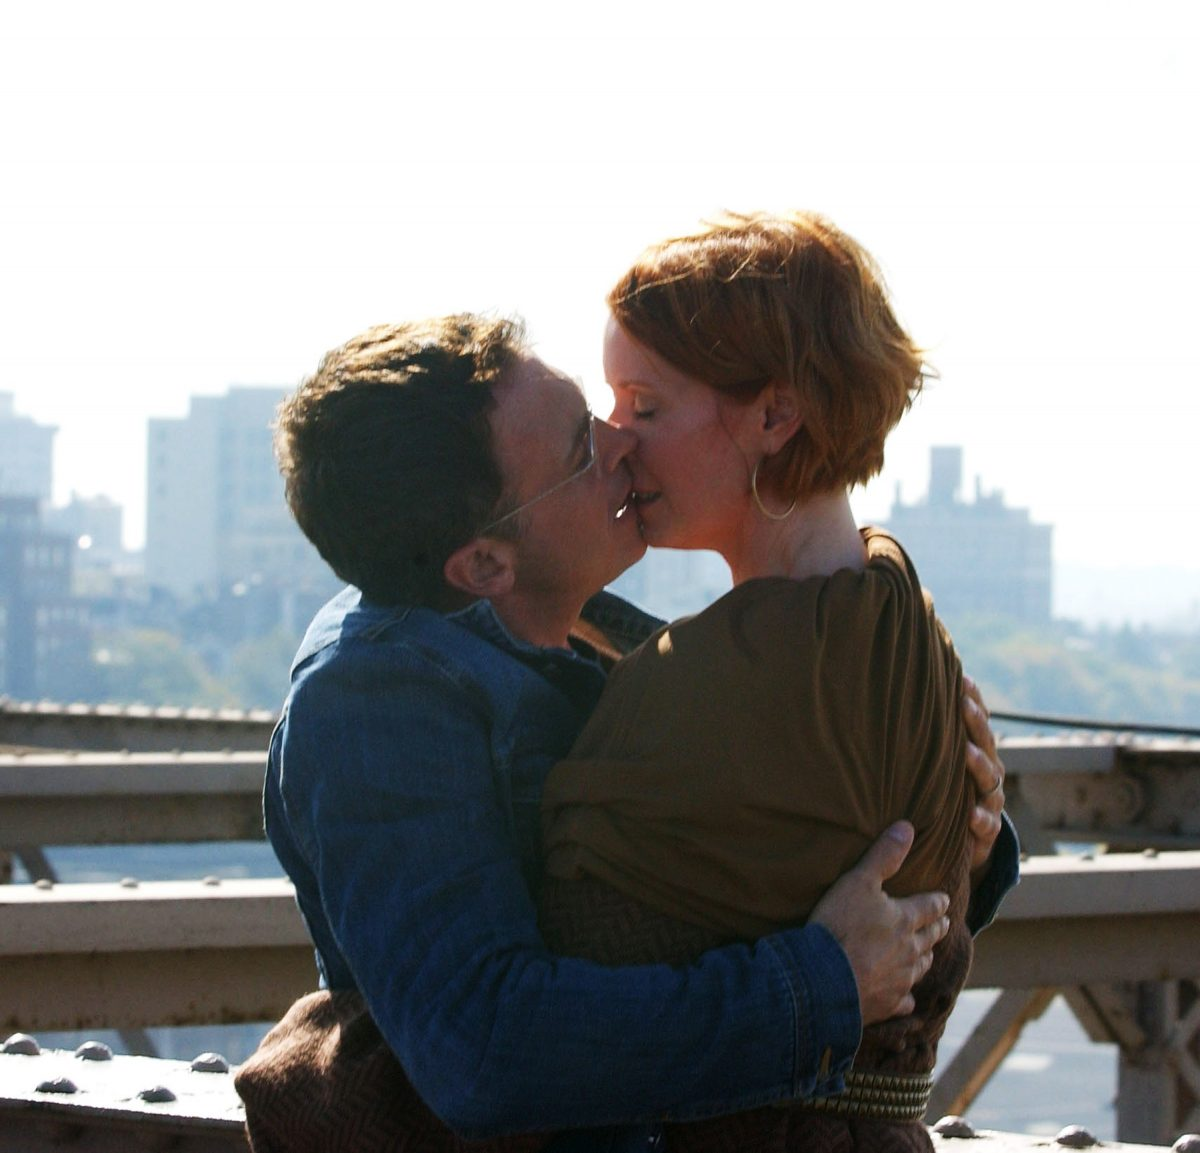 NEW YORK - OCTOBER 22: (ITALY OUT; NY DAILY NEWS, NEWSDAY OUT) Cynthia Nixon and David Eigenberg appear on the Brooklyn Bridge during filming for 'Sex and the City: The Movie'